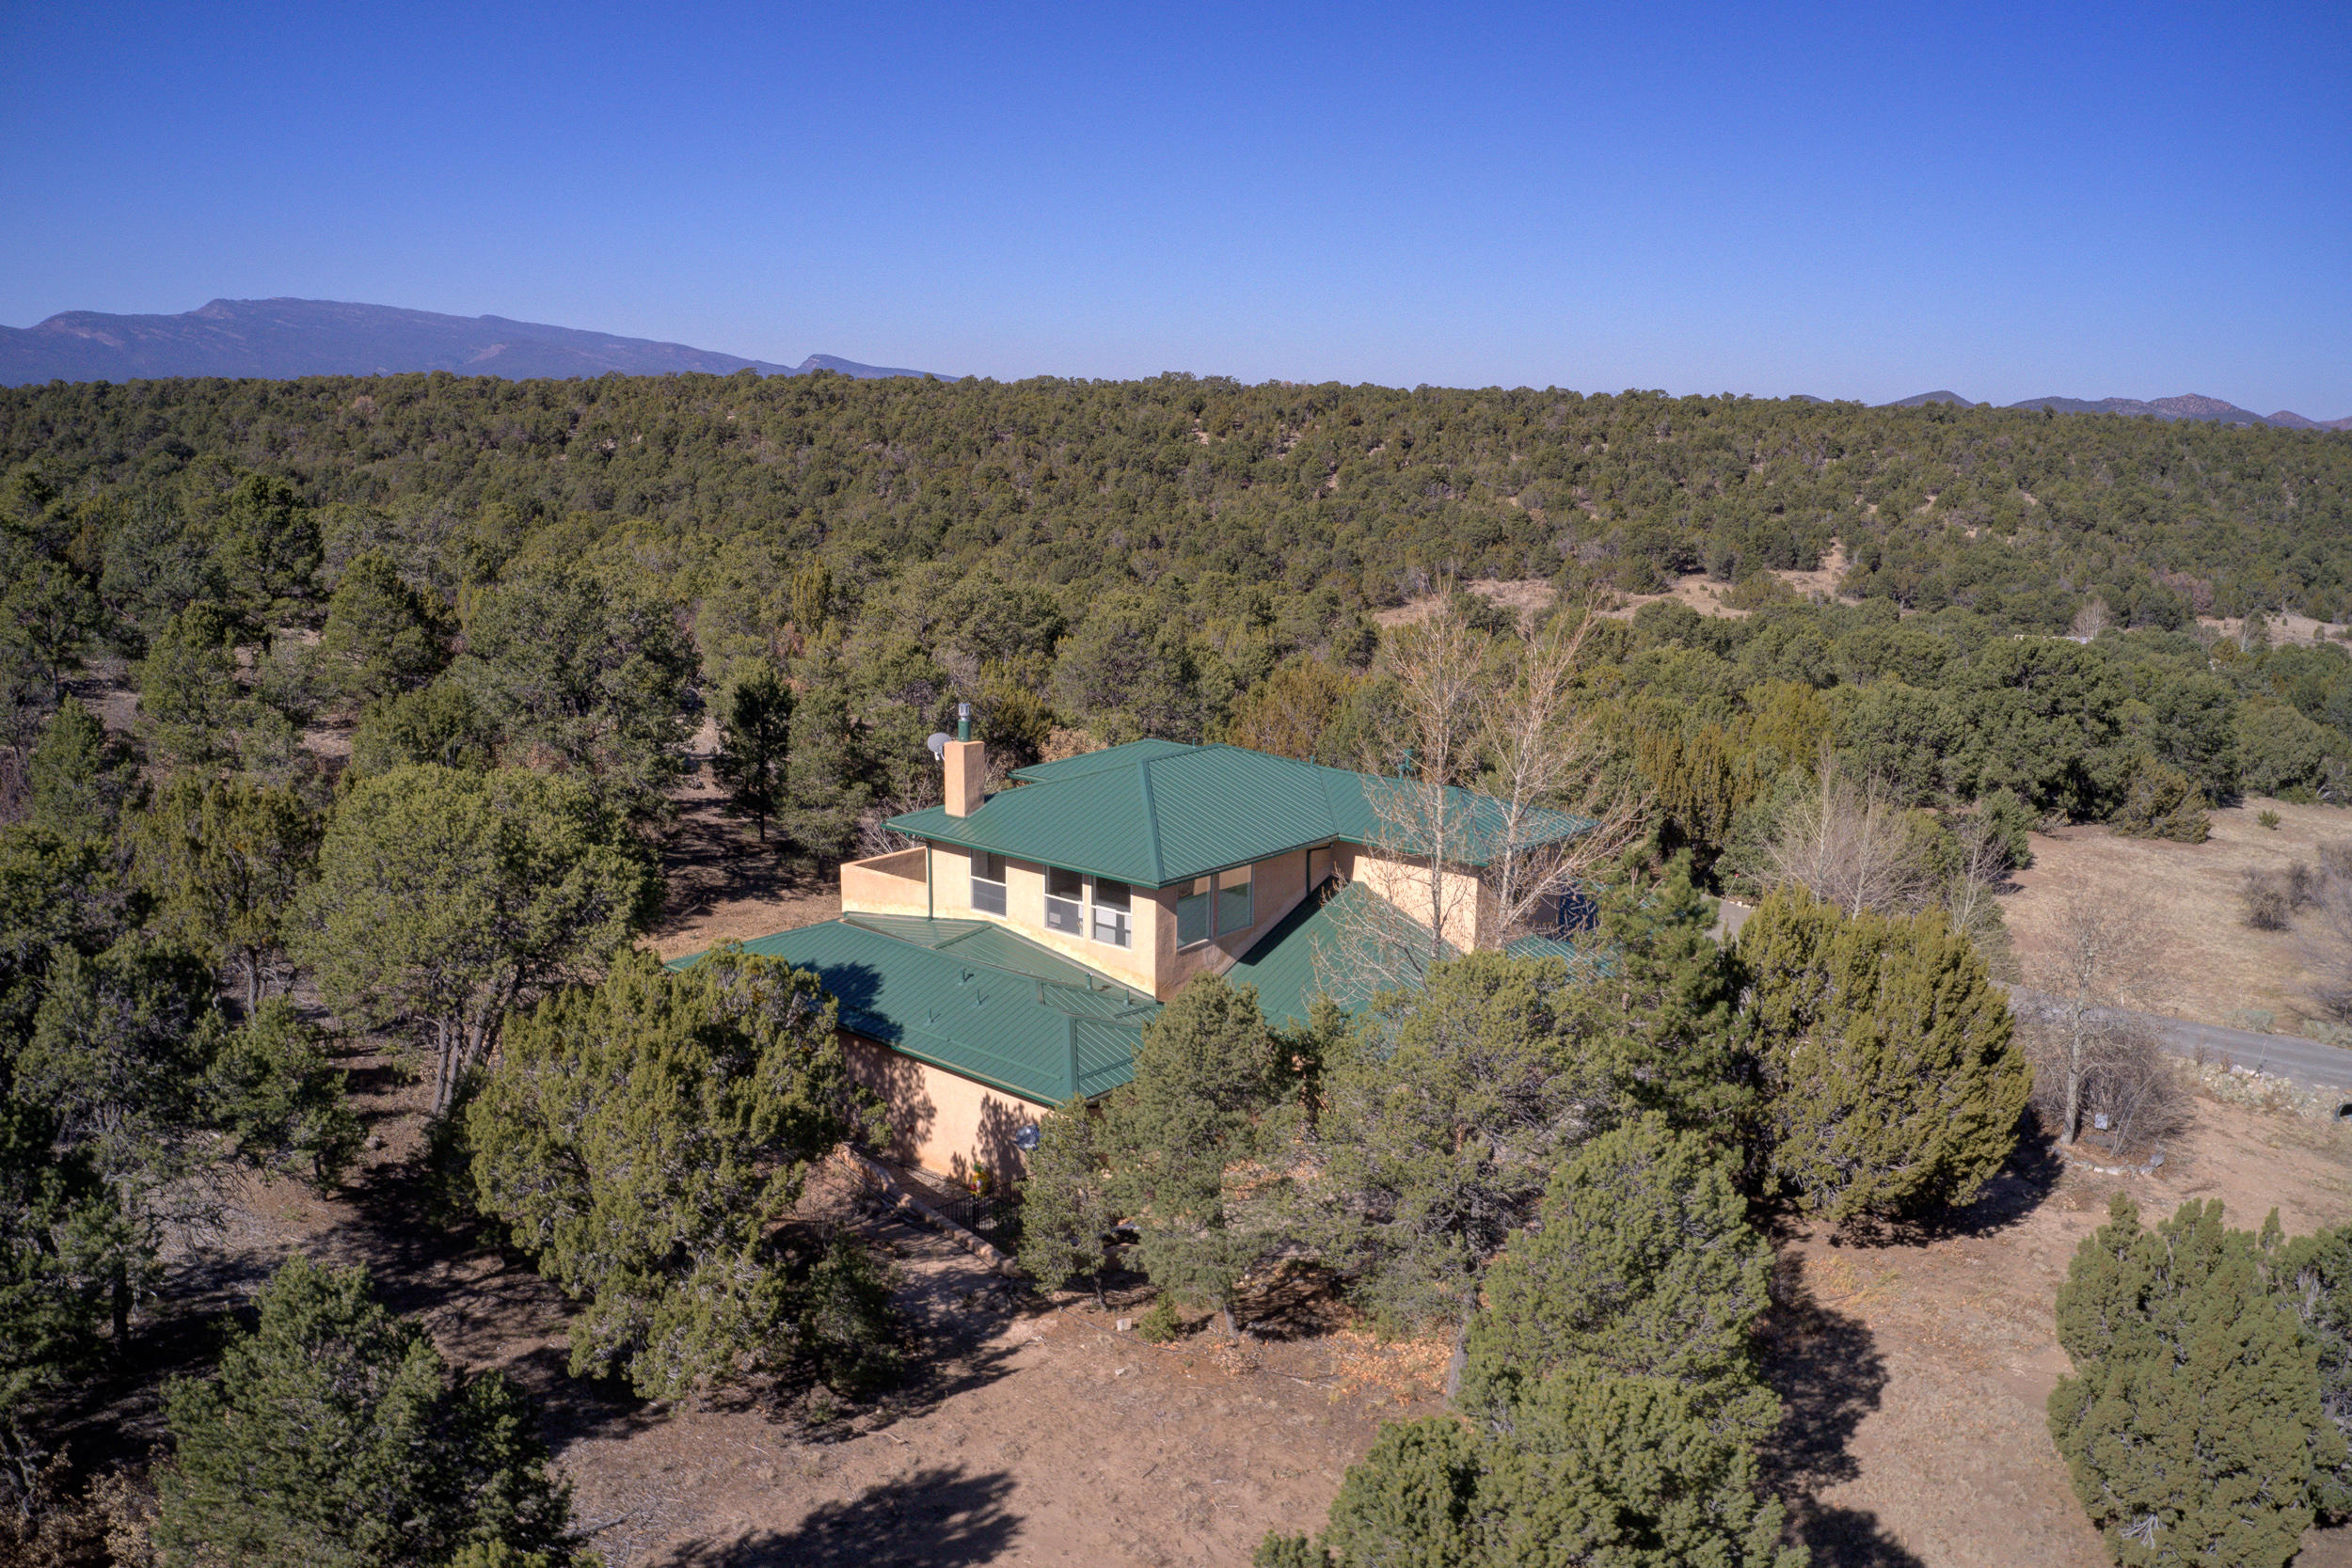 Nature Lovers Welcome!  Escape the city and live in this Beautiful Custom home in the coveted Woodlands Subdivision.  All of the convenience of living off the Highway (easy 20 minute commute to ABQ with little-to-no traffic), but yet still private and secluded without any of the noise!The home has already finished inspections and is just waiting for it's new owners.  New Roof, Gutters, and Downspouts. New Furnace.   Enjoy mountain living and  let your stress melt away in the dry/steam sauna. For those who enjoy wildlife, you couldn't ask for more: Hummingbirds in numbers you've likely never experienced! Deer, Fox, Turkeys, Weasels, and more have all been seen on the property.  There are  views in all directions and a particularly fantastic view of South Mountain from the property.